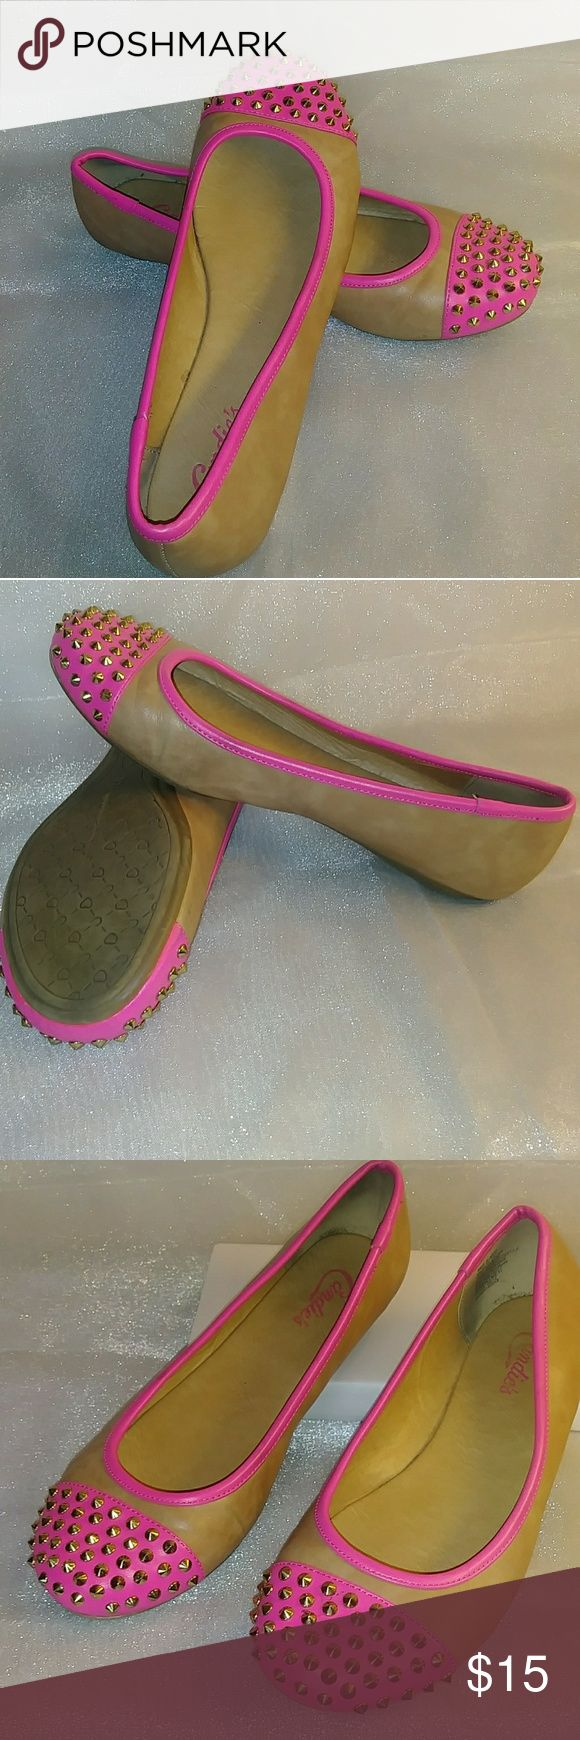 Candies Cakendall Studded Multi Colored Flats Women's Candies Cakendall Pink and Camel colored Ballet Flats with Studded Toes. These Adorable Flats give a Great POP of color to nearly any outfit. In very Good Pre-owned Condition. Candie's Shoes Flats & Loafers